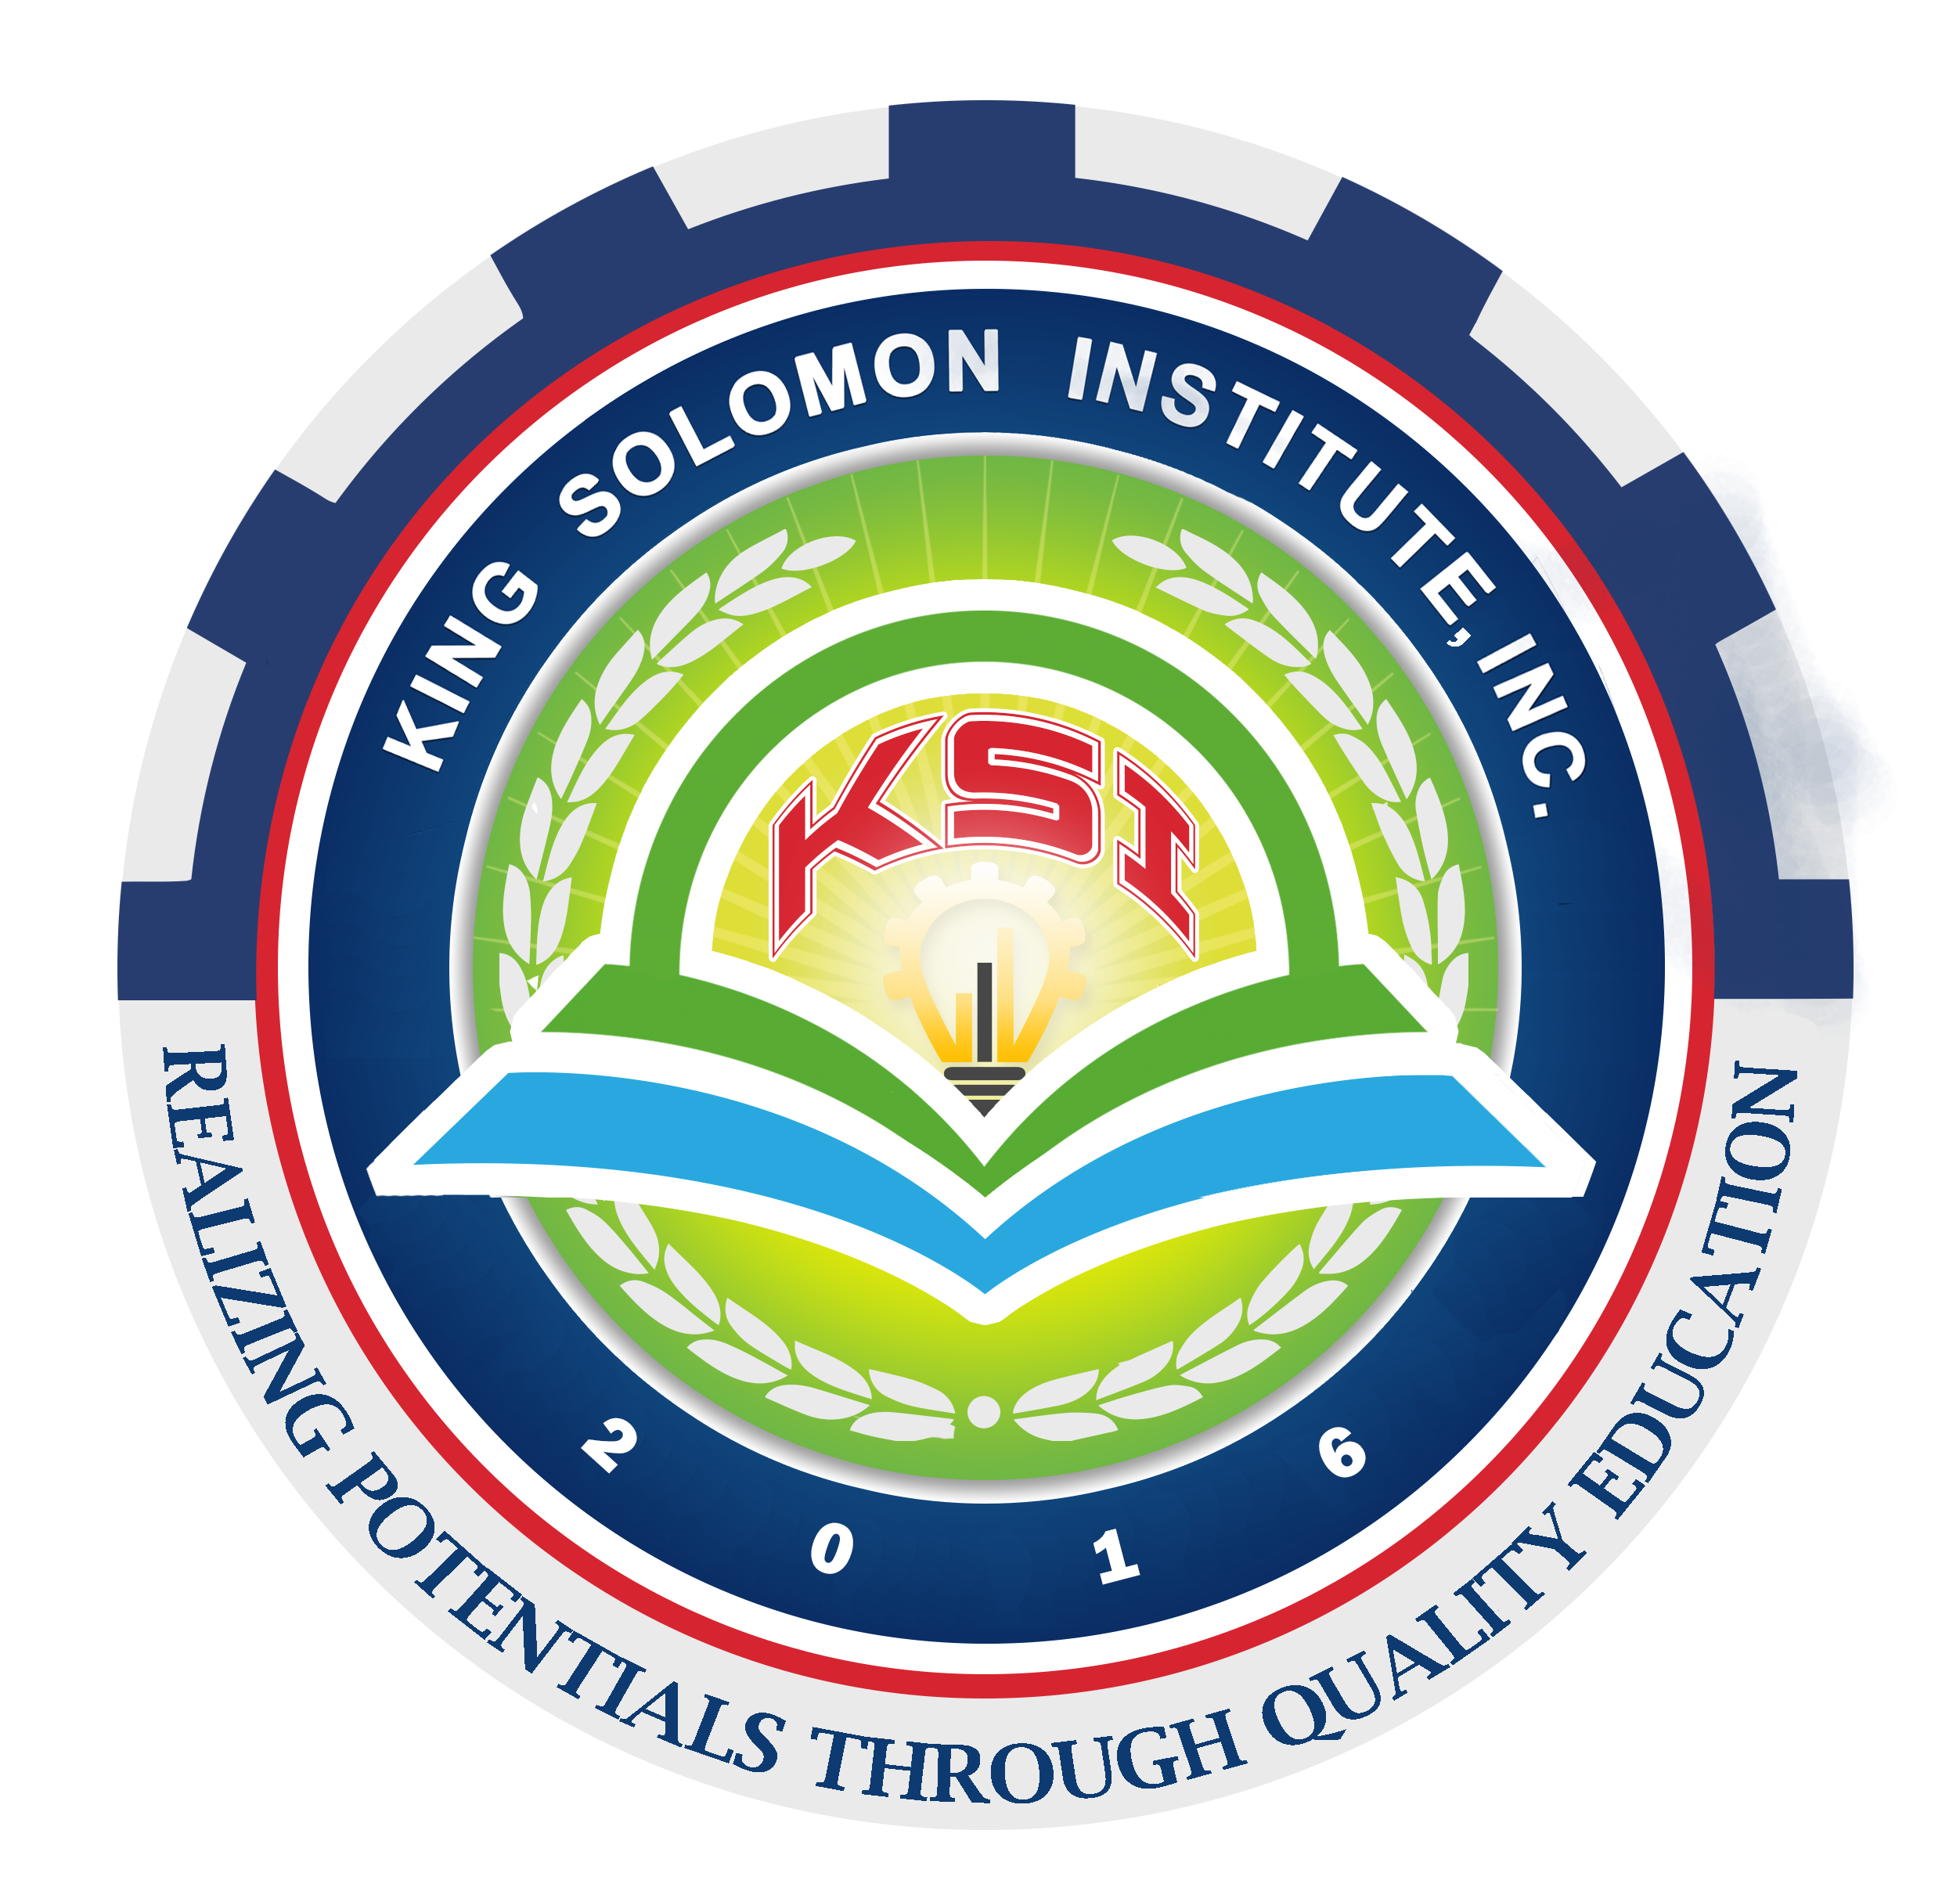 King Solomon Institute Academy,Inc. Logo